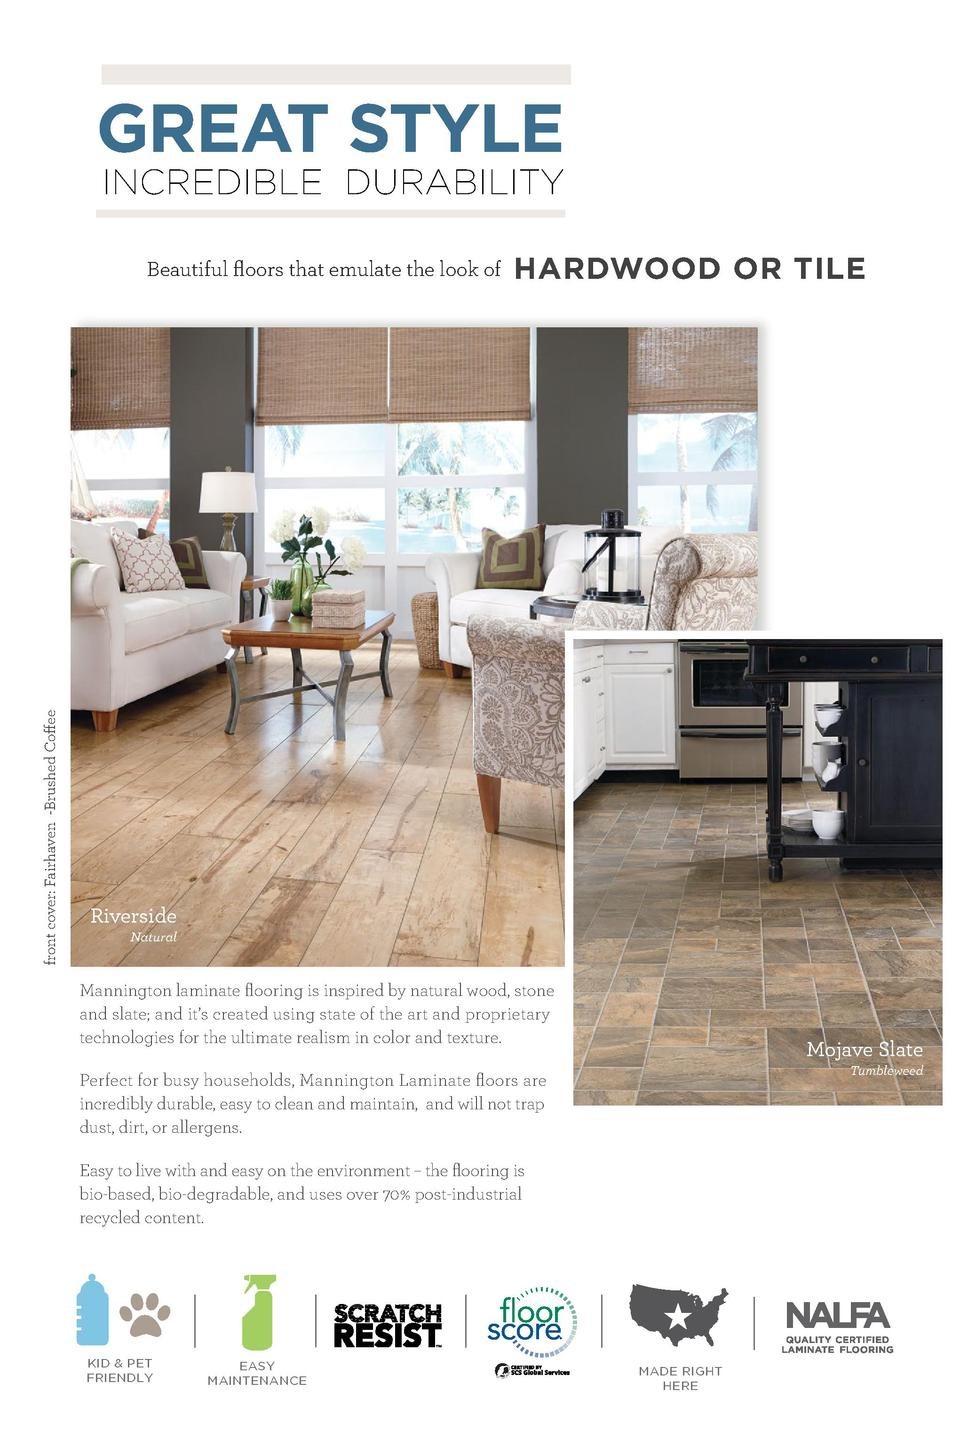 GREAT STYLE INCREDIBLE DURABILITY  front cover  Fairhaven -Brushed Coffee  Beautiful floors that emulate the look of  HARD...